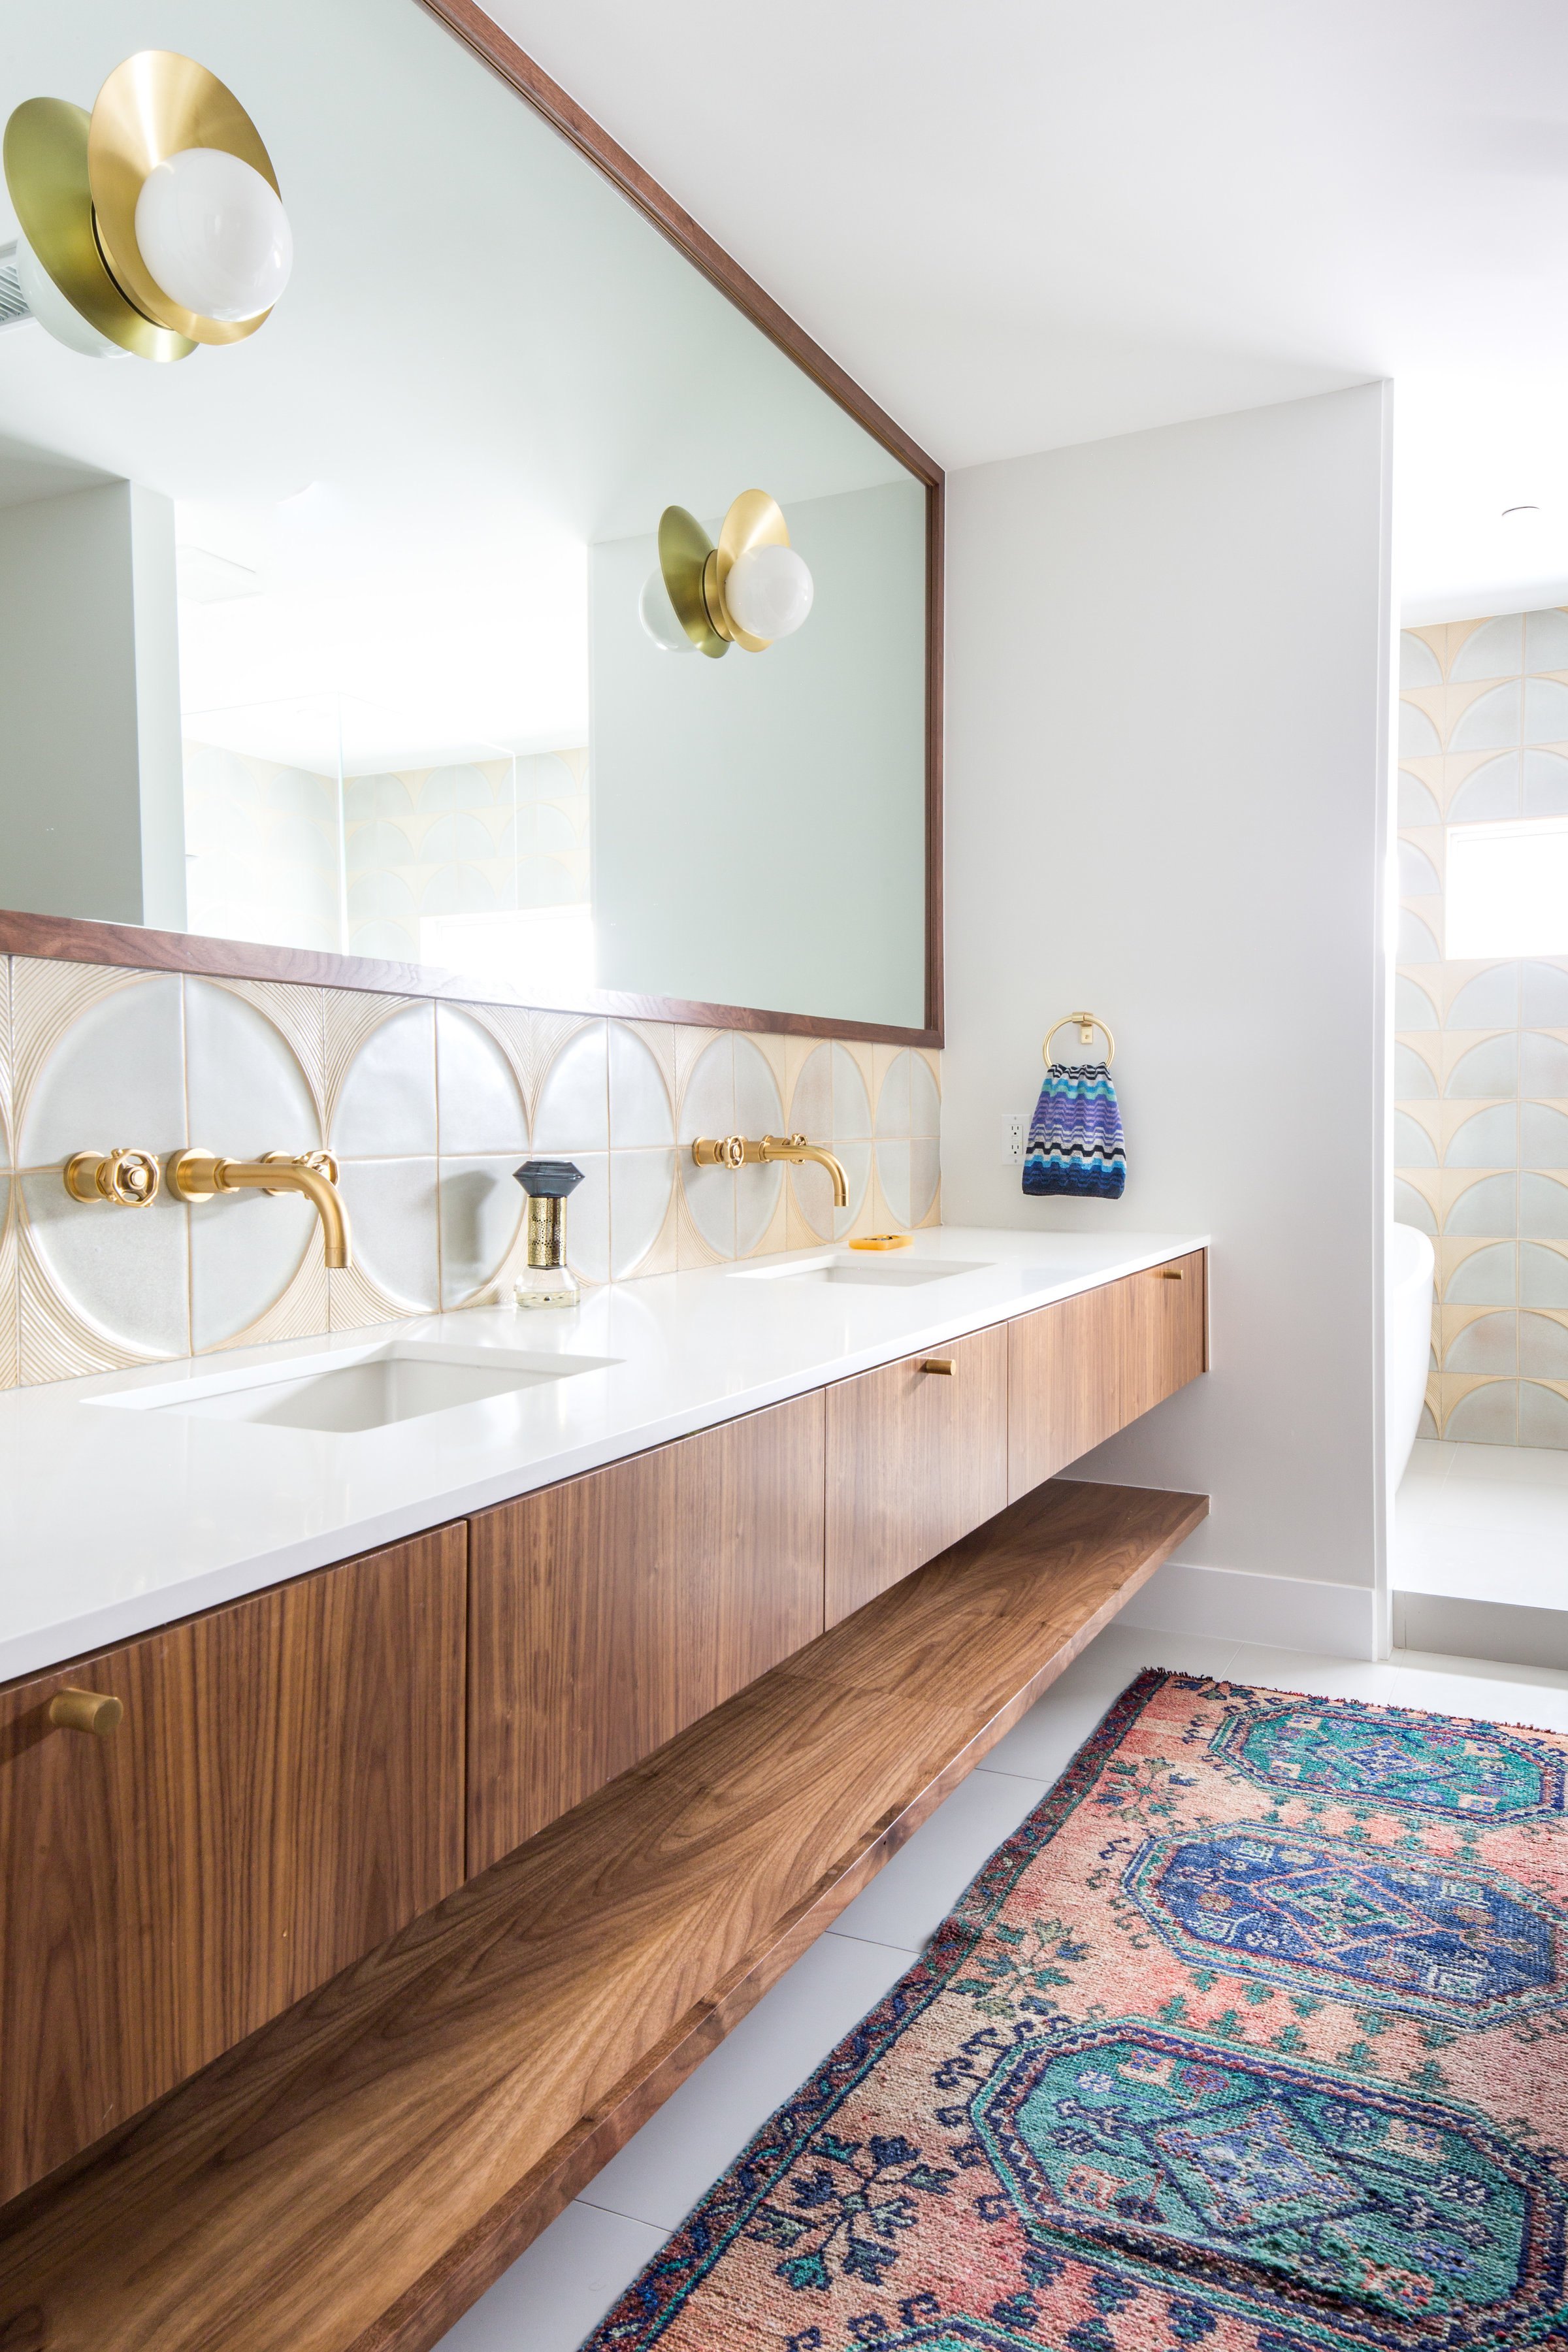 We Asked 6 Designers for Their Budget Bathroom Remodel Tips